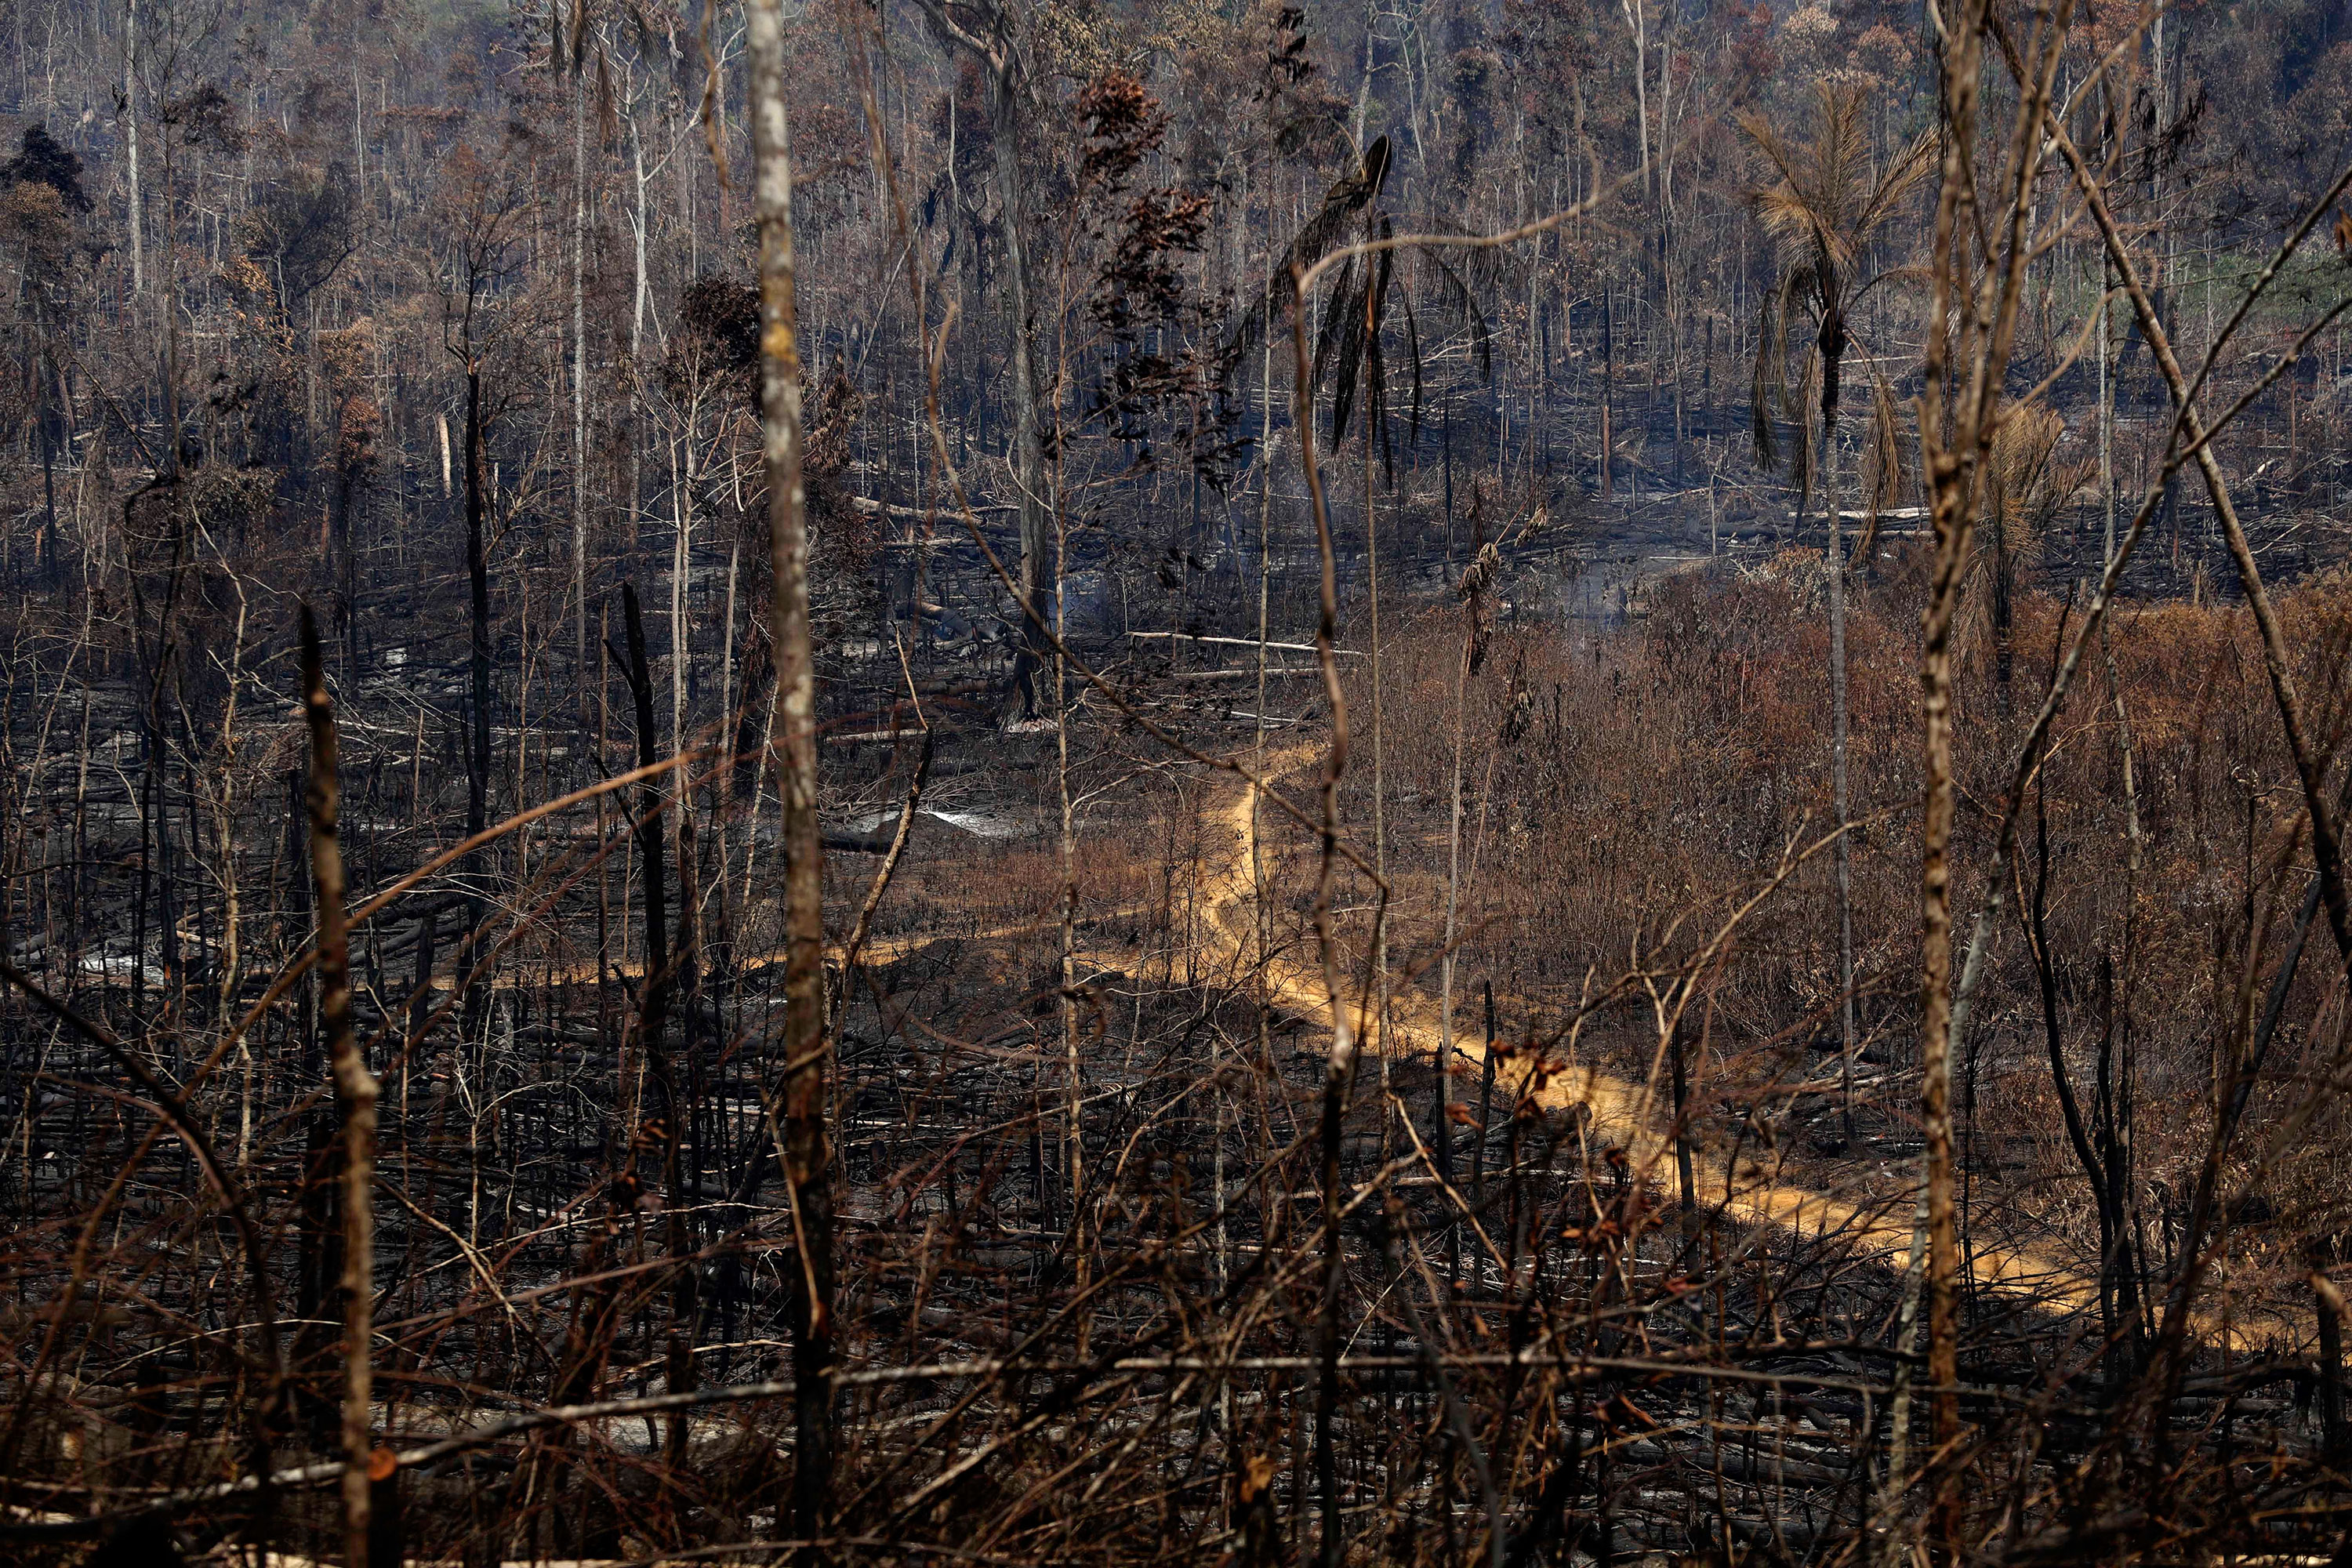 The Amazon has been burning at the highest rate since 2013.